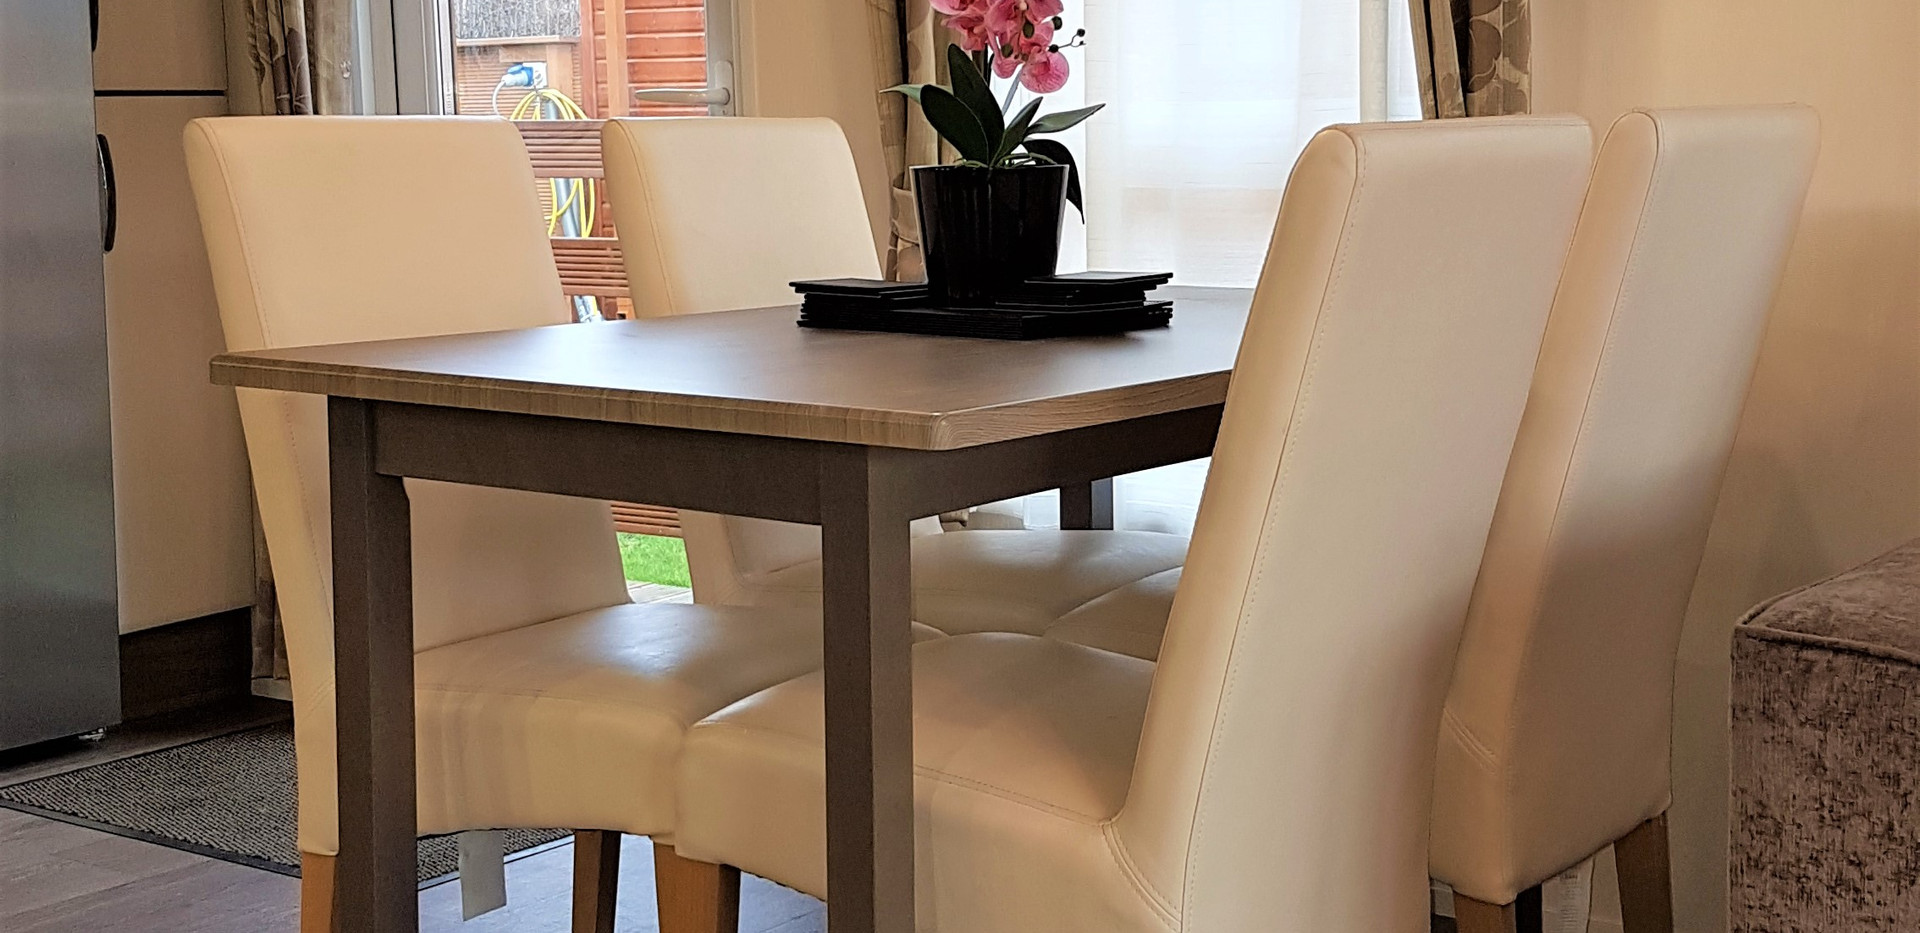 Patricia dining table 2.jpg